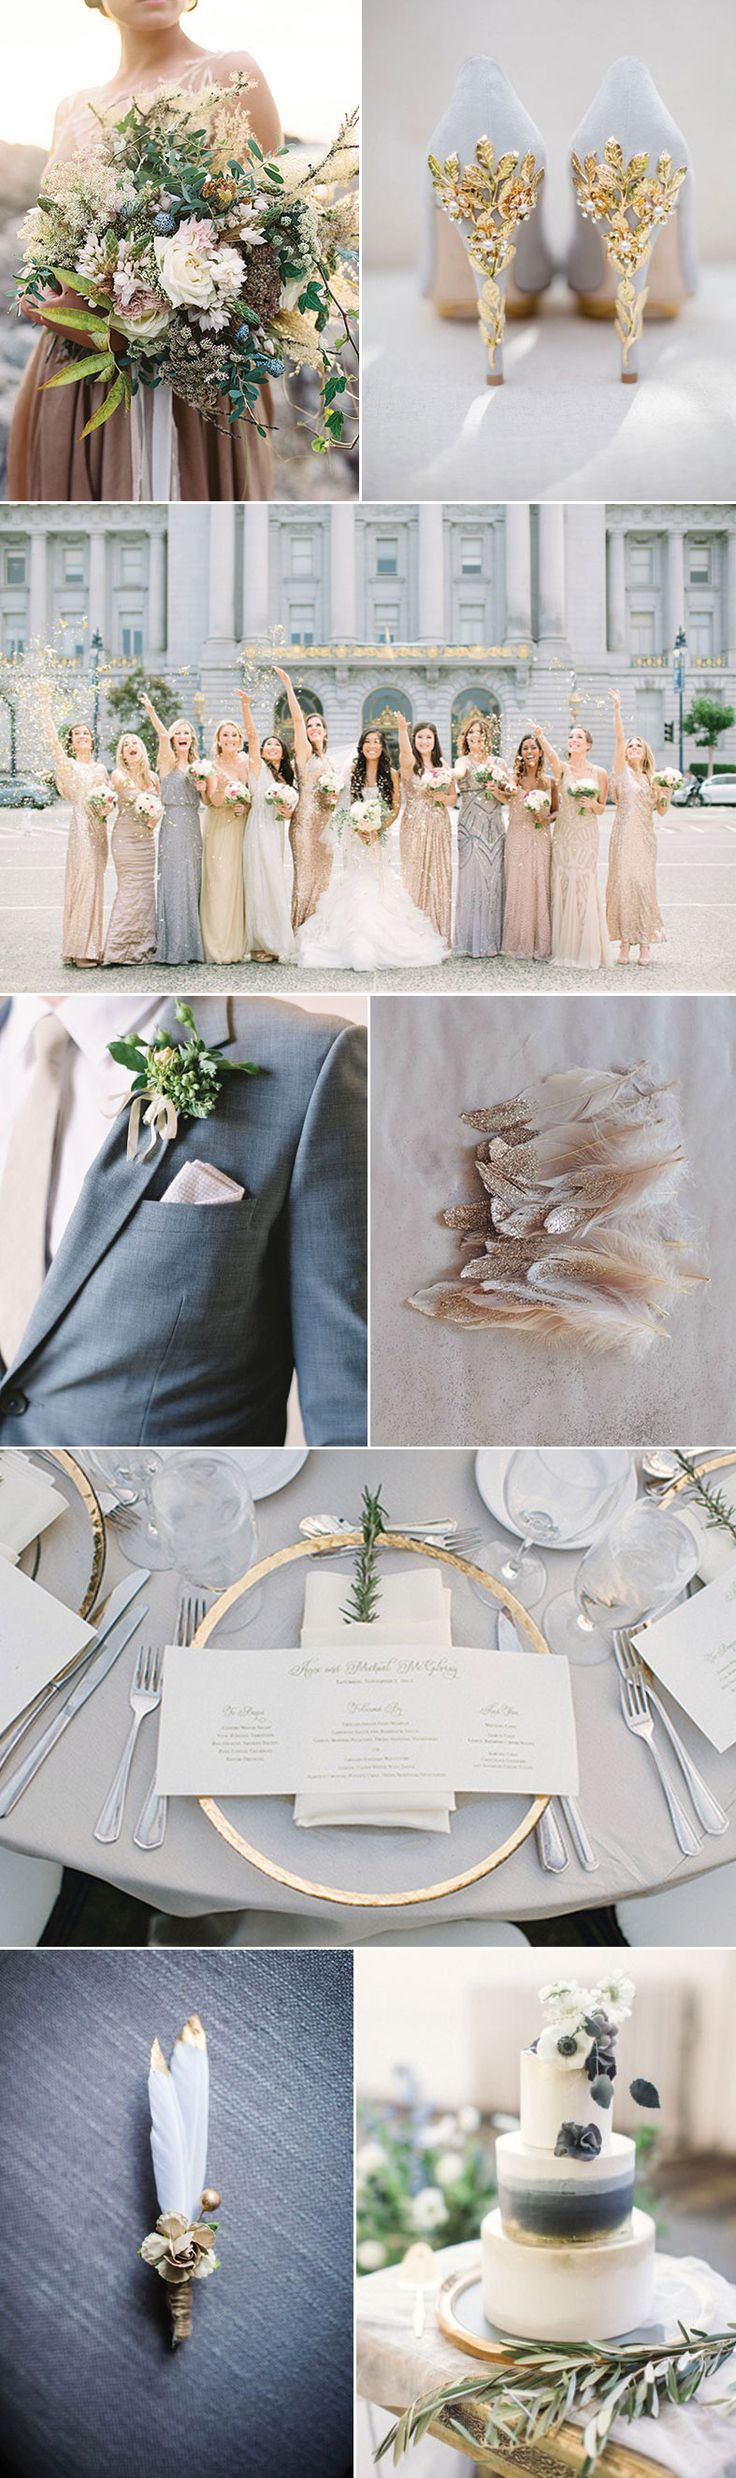 Inspiration for weddings in glam shade of golds, light grays and ...